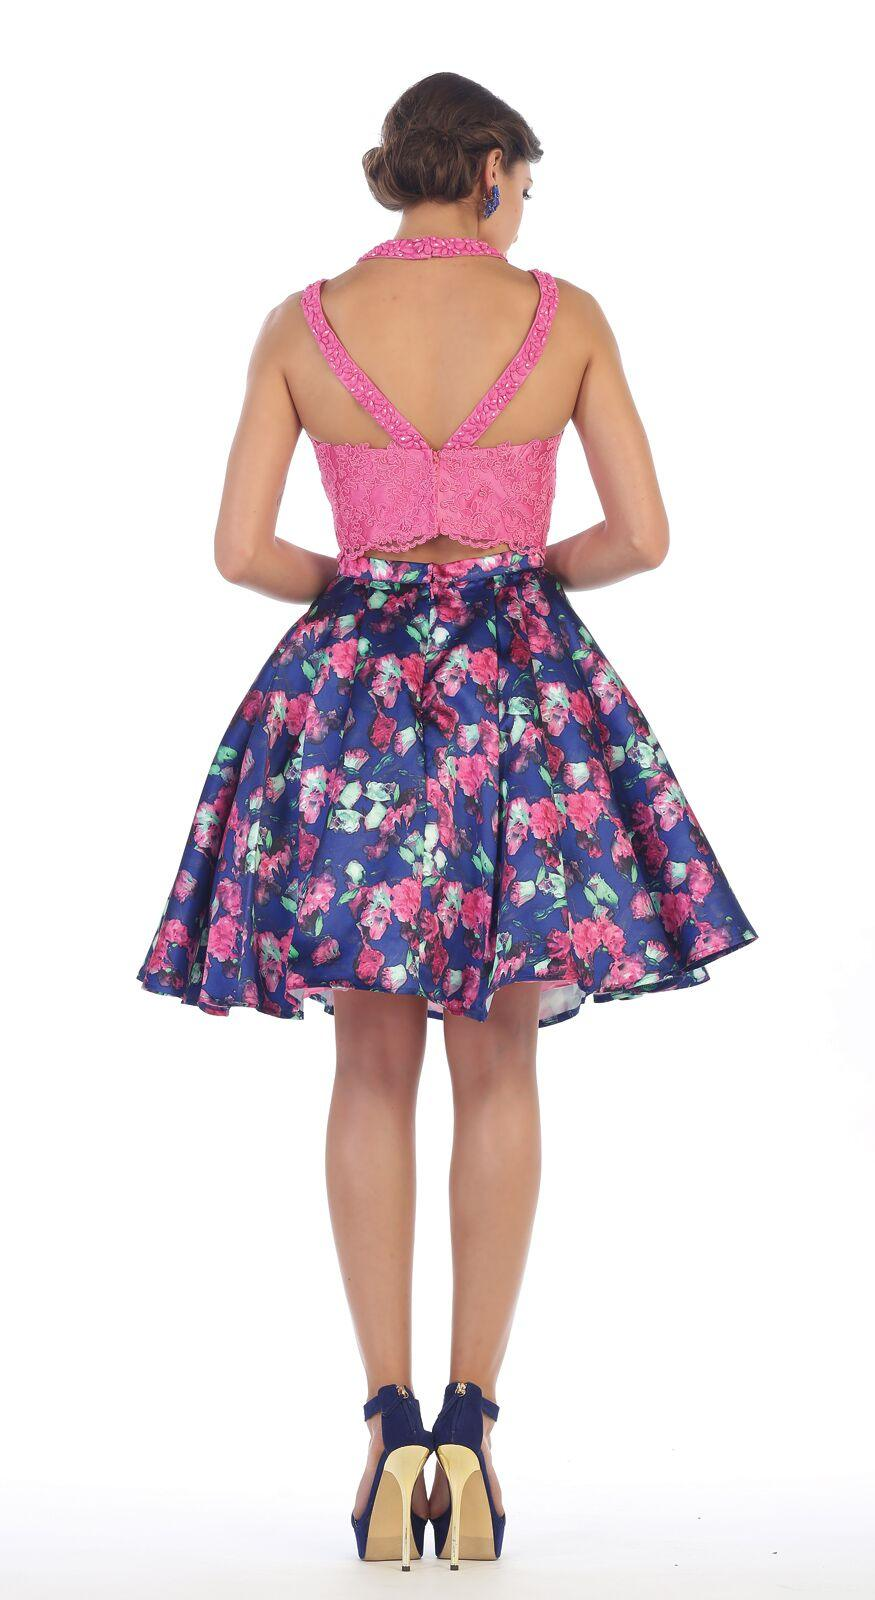 714b1519168 ... Short Two Piece Set Floral Print Prom Dress - The Dress Outlet May Queen  ...